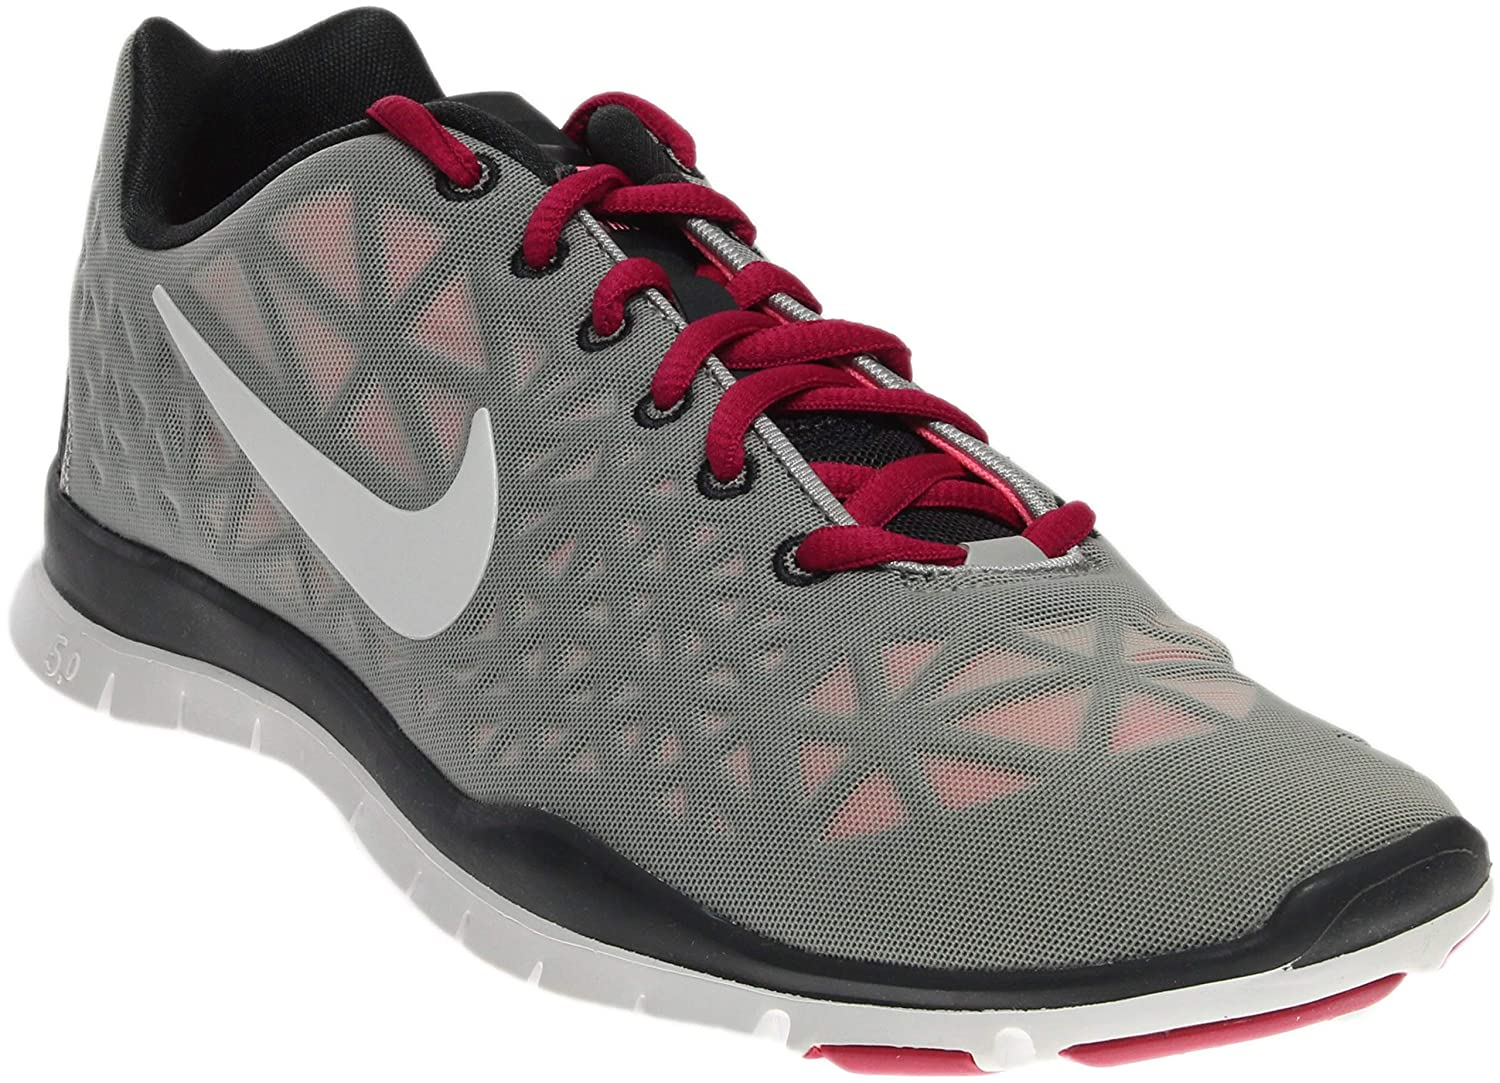 official photos 65efb d0d02 Nike Free Tr Fit 3 Grey: Buy Online at Low Prices in India ...